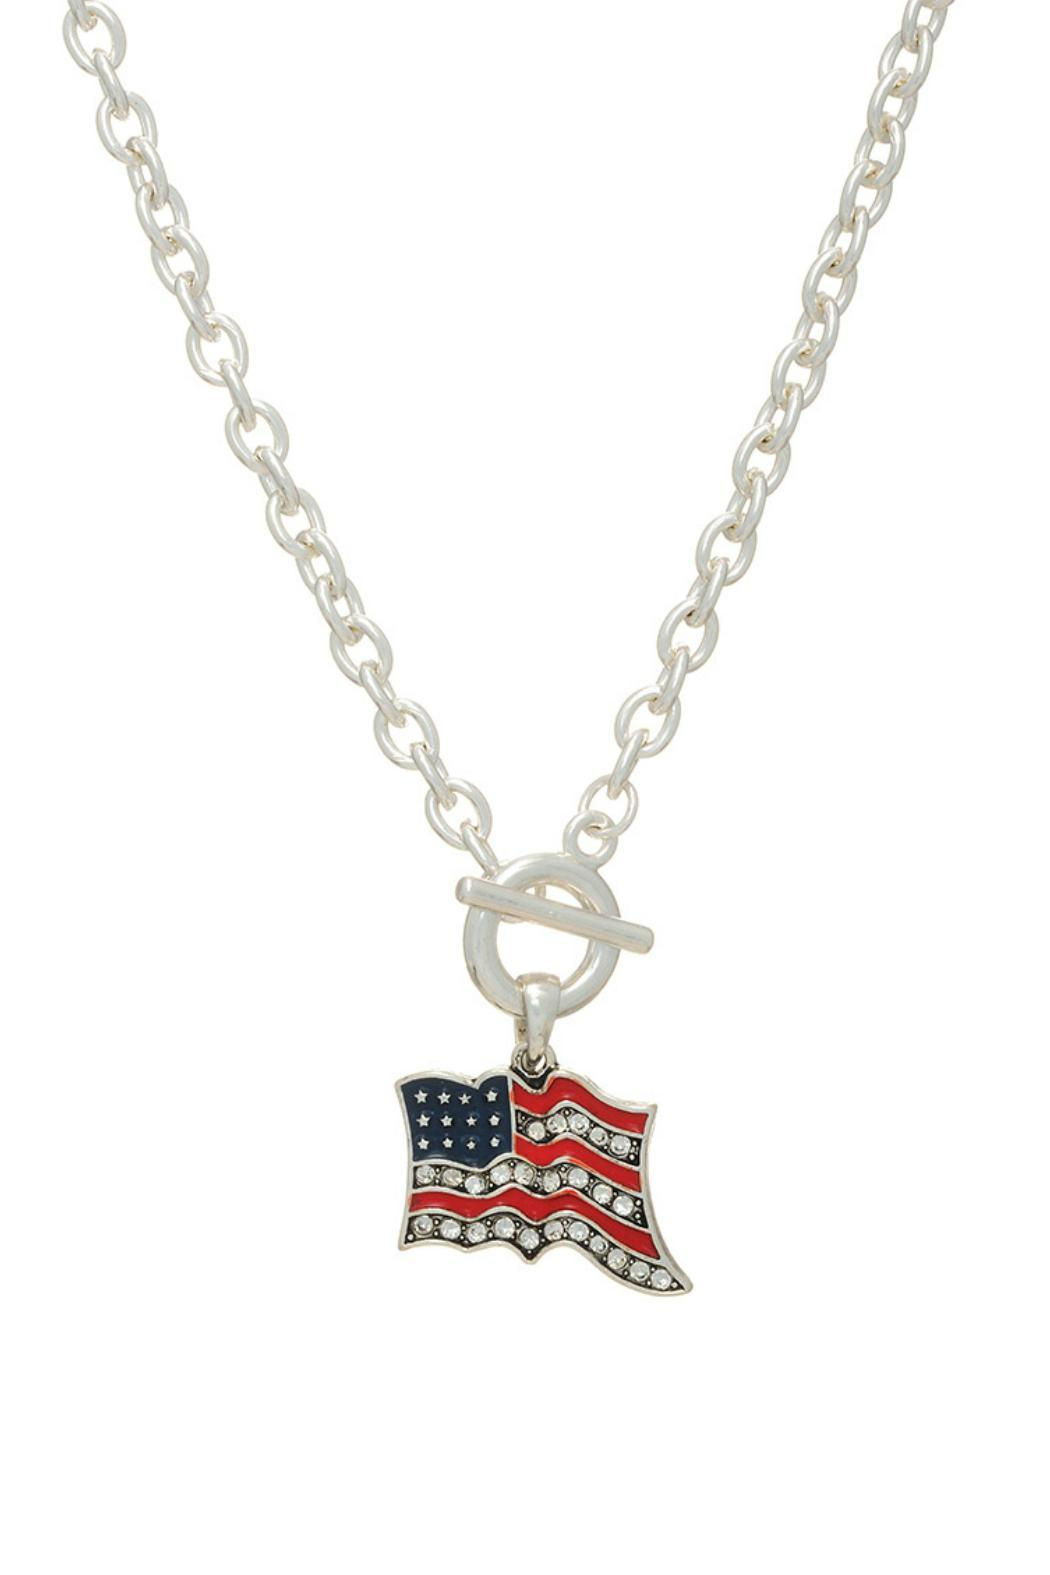 gift tone necklace silver tellurion eagle for american totem design glass charm model flag patriot pendant gem store product